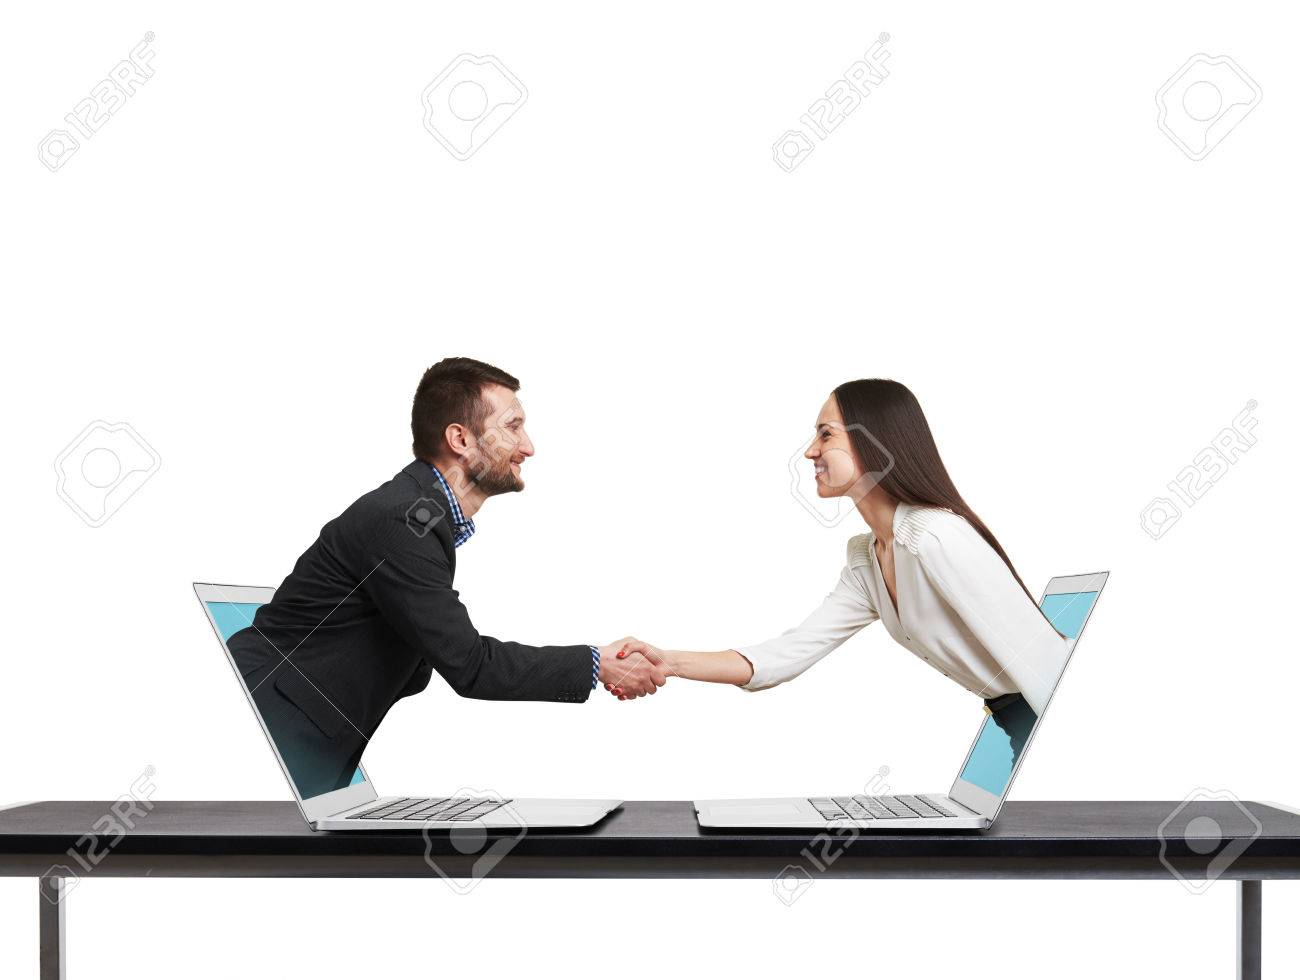 smiley businessman and businesswoman come out from laptop, shaking hands and looking at each other over white background - 39302591